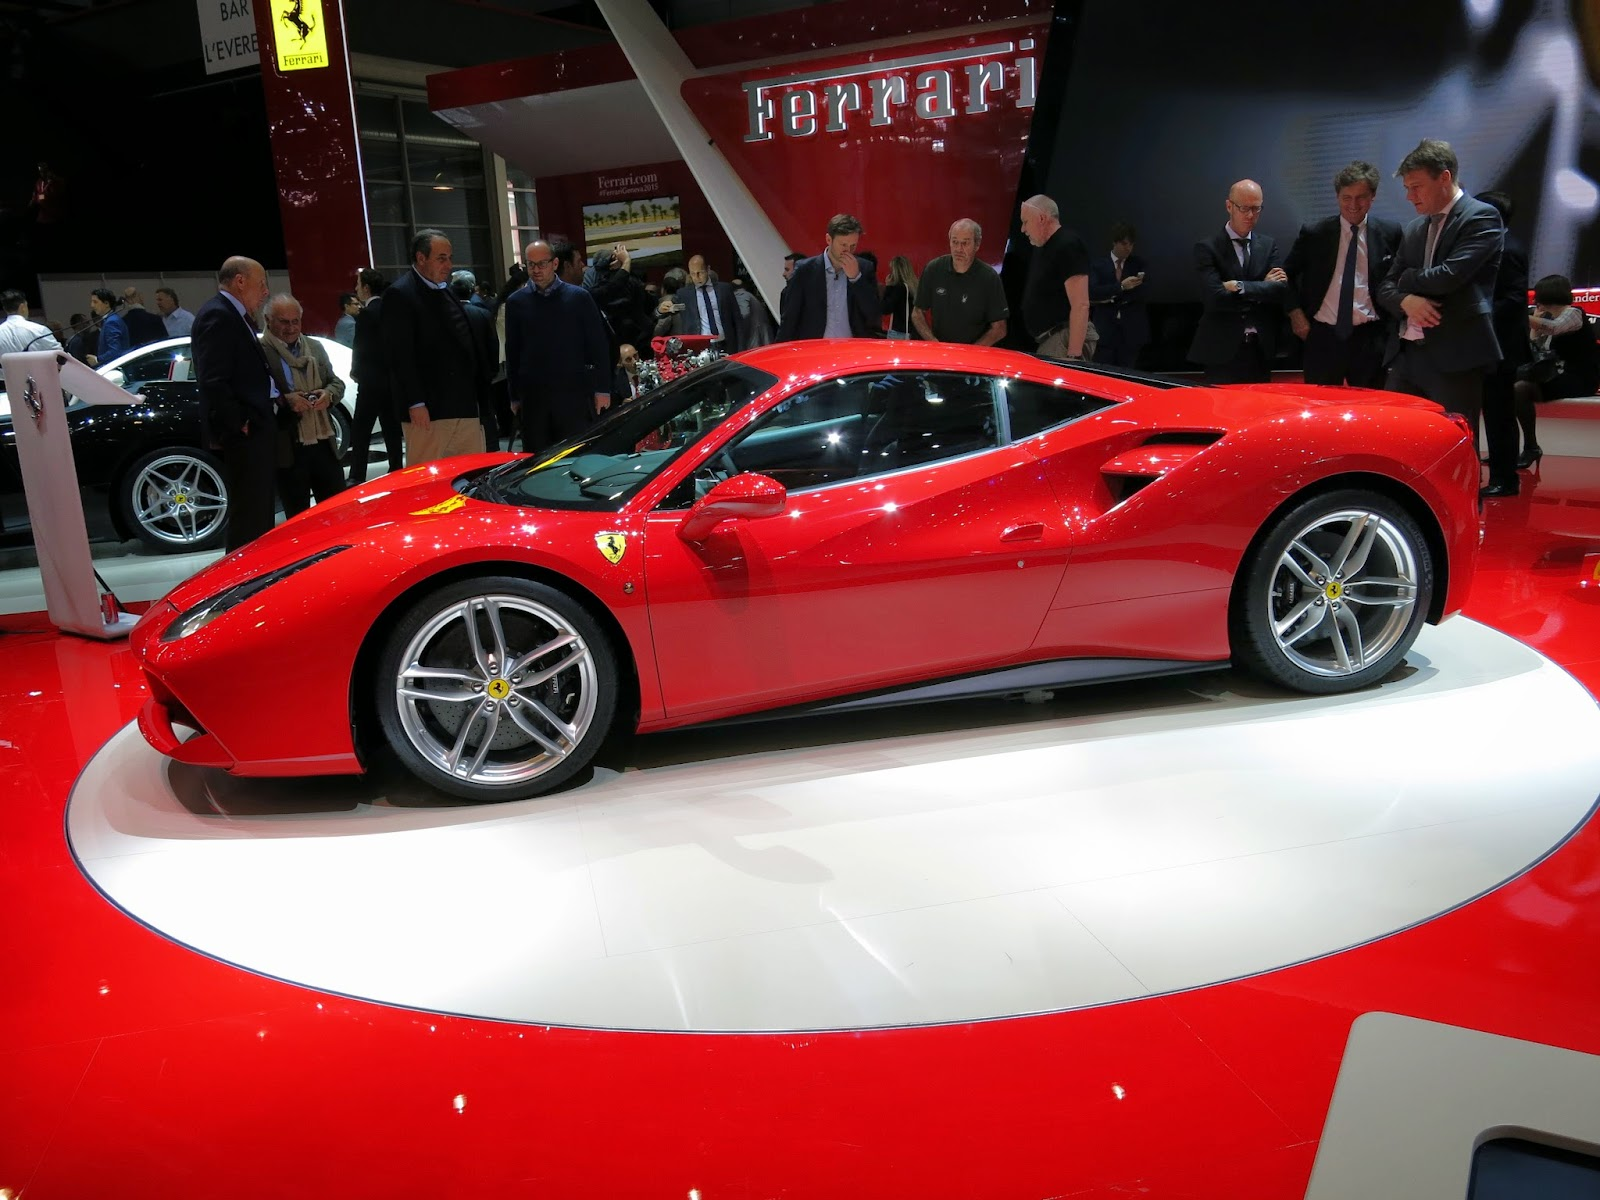 Great Ferrari 458 GTB At The Geneva Motor Show Via Norbert Aepli, Switzerland [CC  BY 4.0 (http://creativecommons.org/licenses/by/4.0)], Via Wikimedia Commons